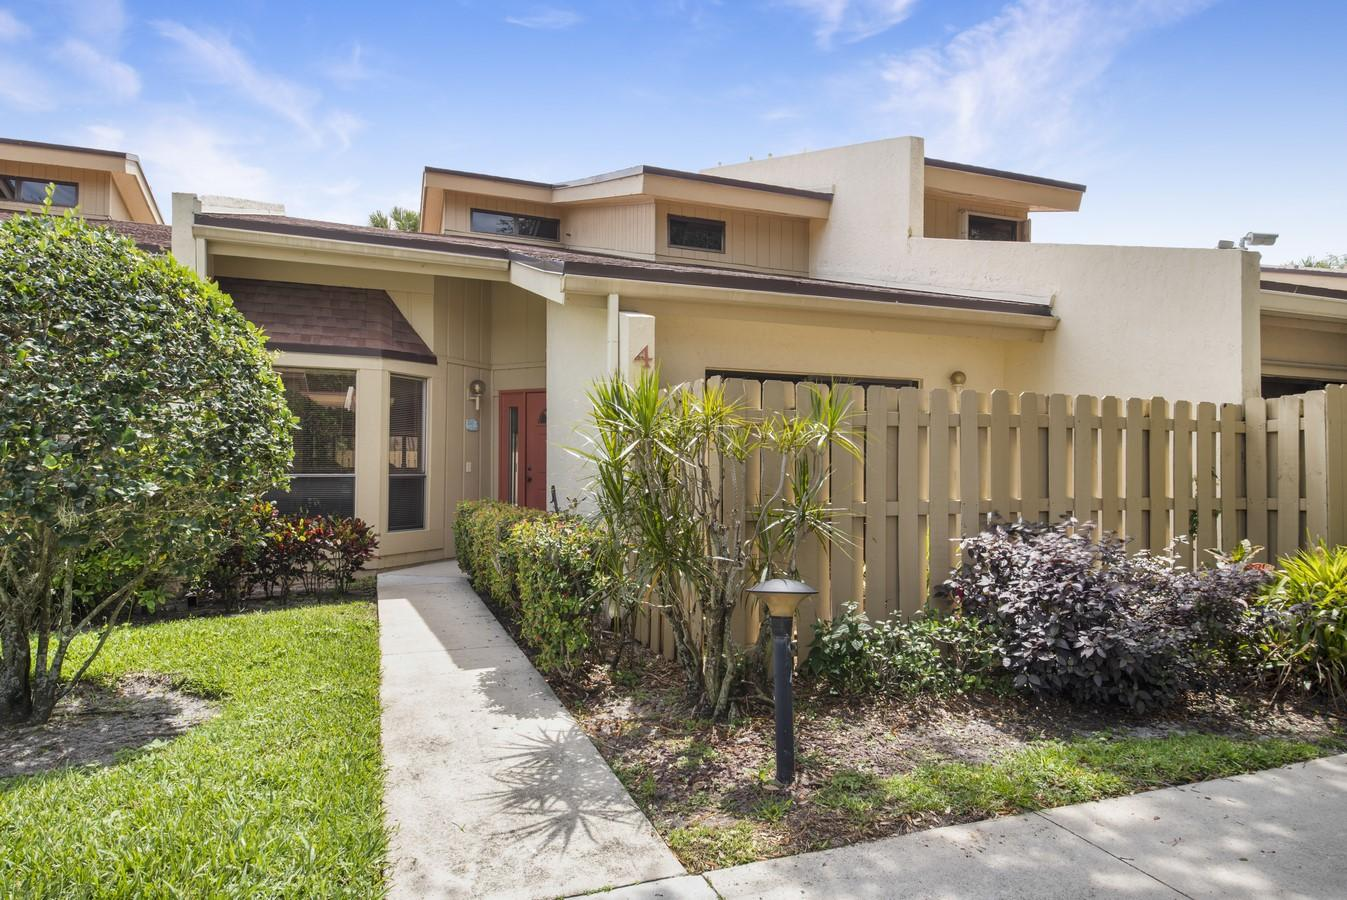 Home for sale in Woodlet Boca Raton Florida